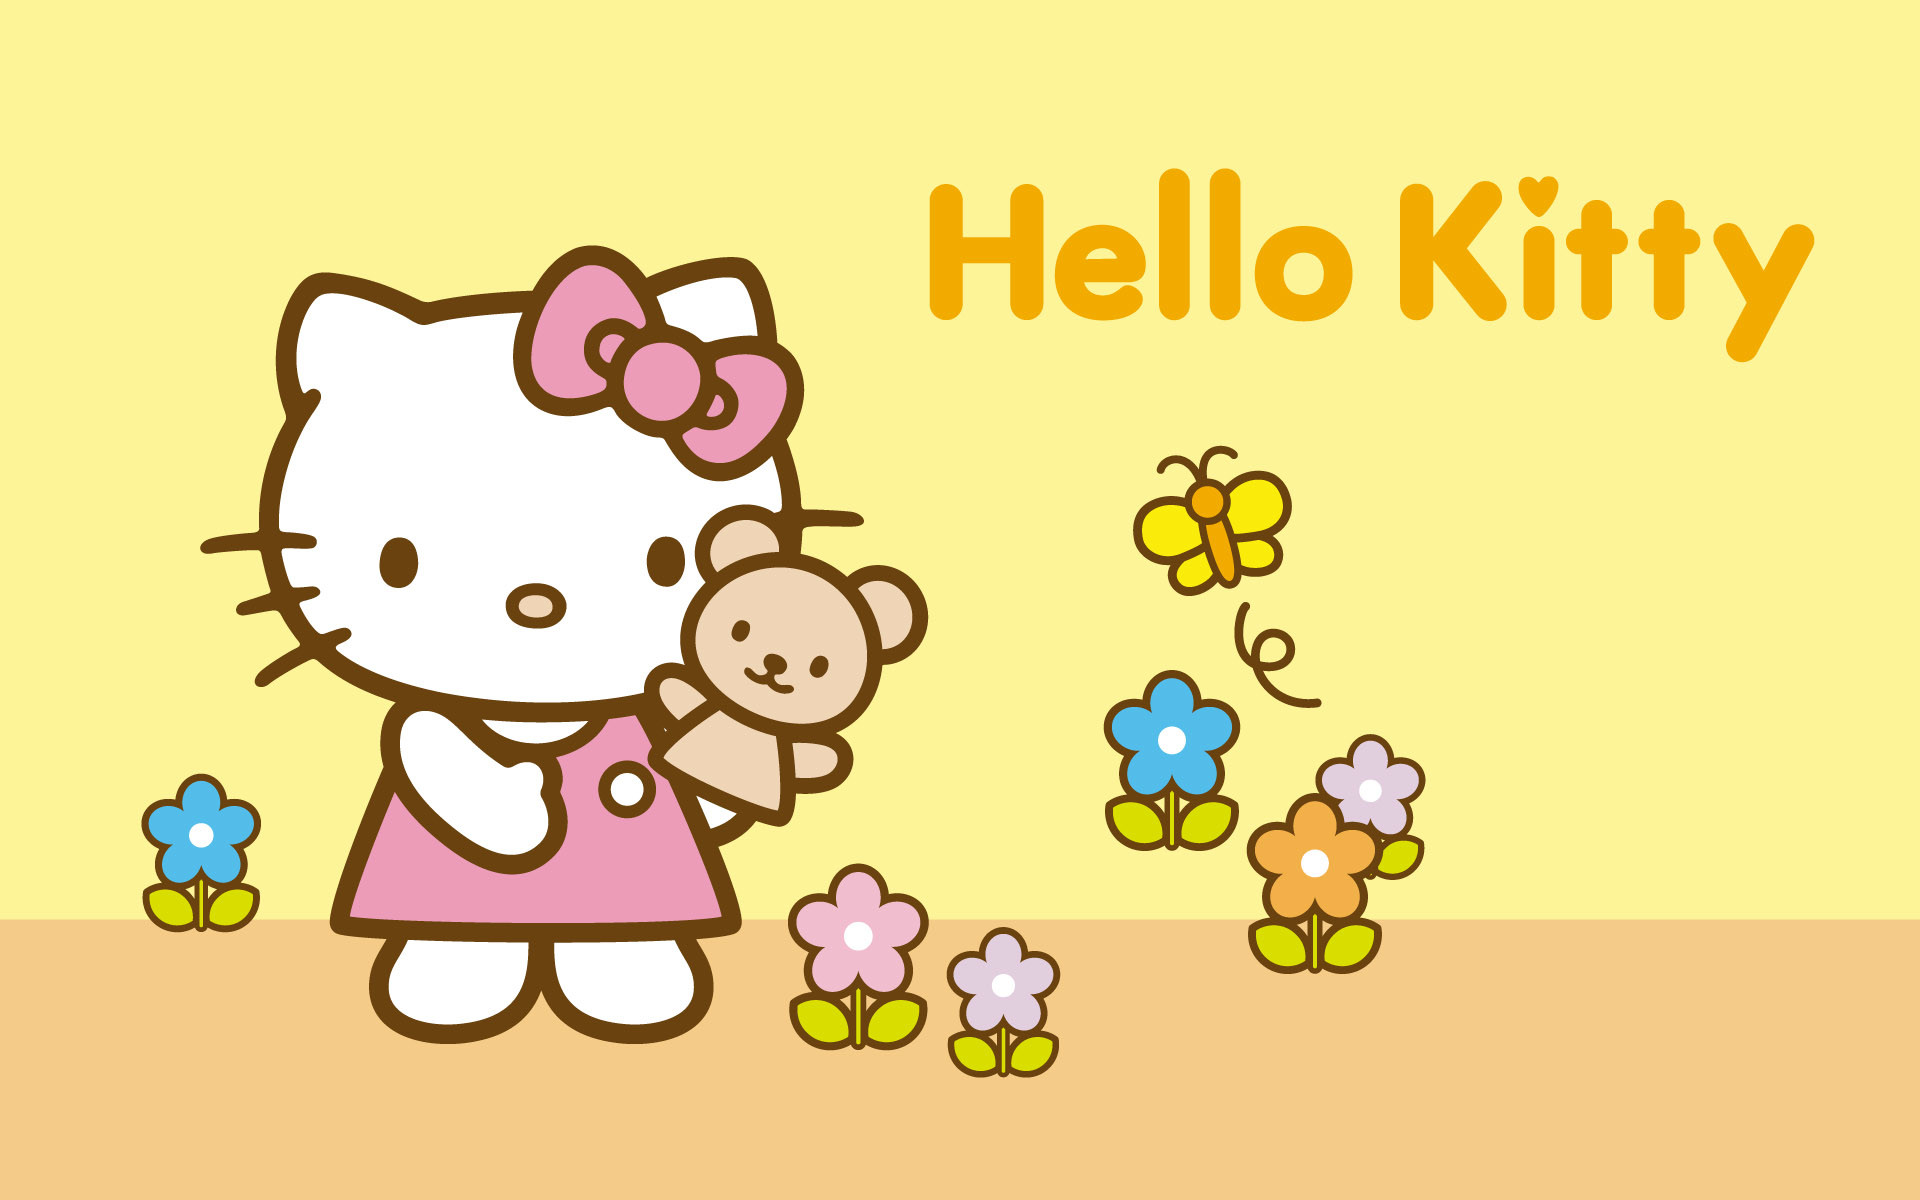 1920x1200 Hello Kitty images Wallpapers HD wallpaper and background photos